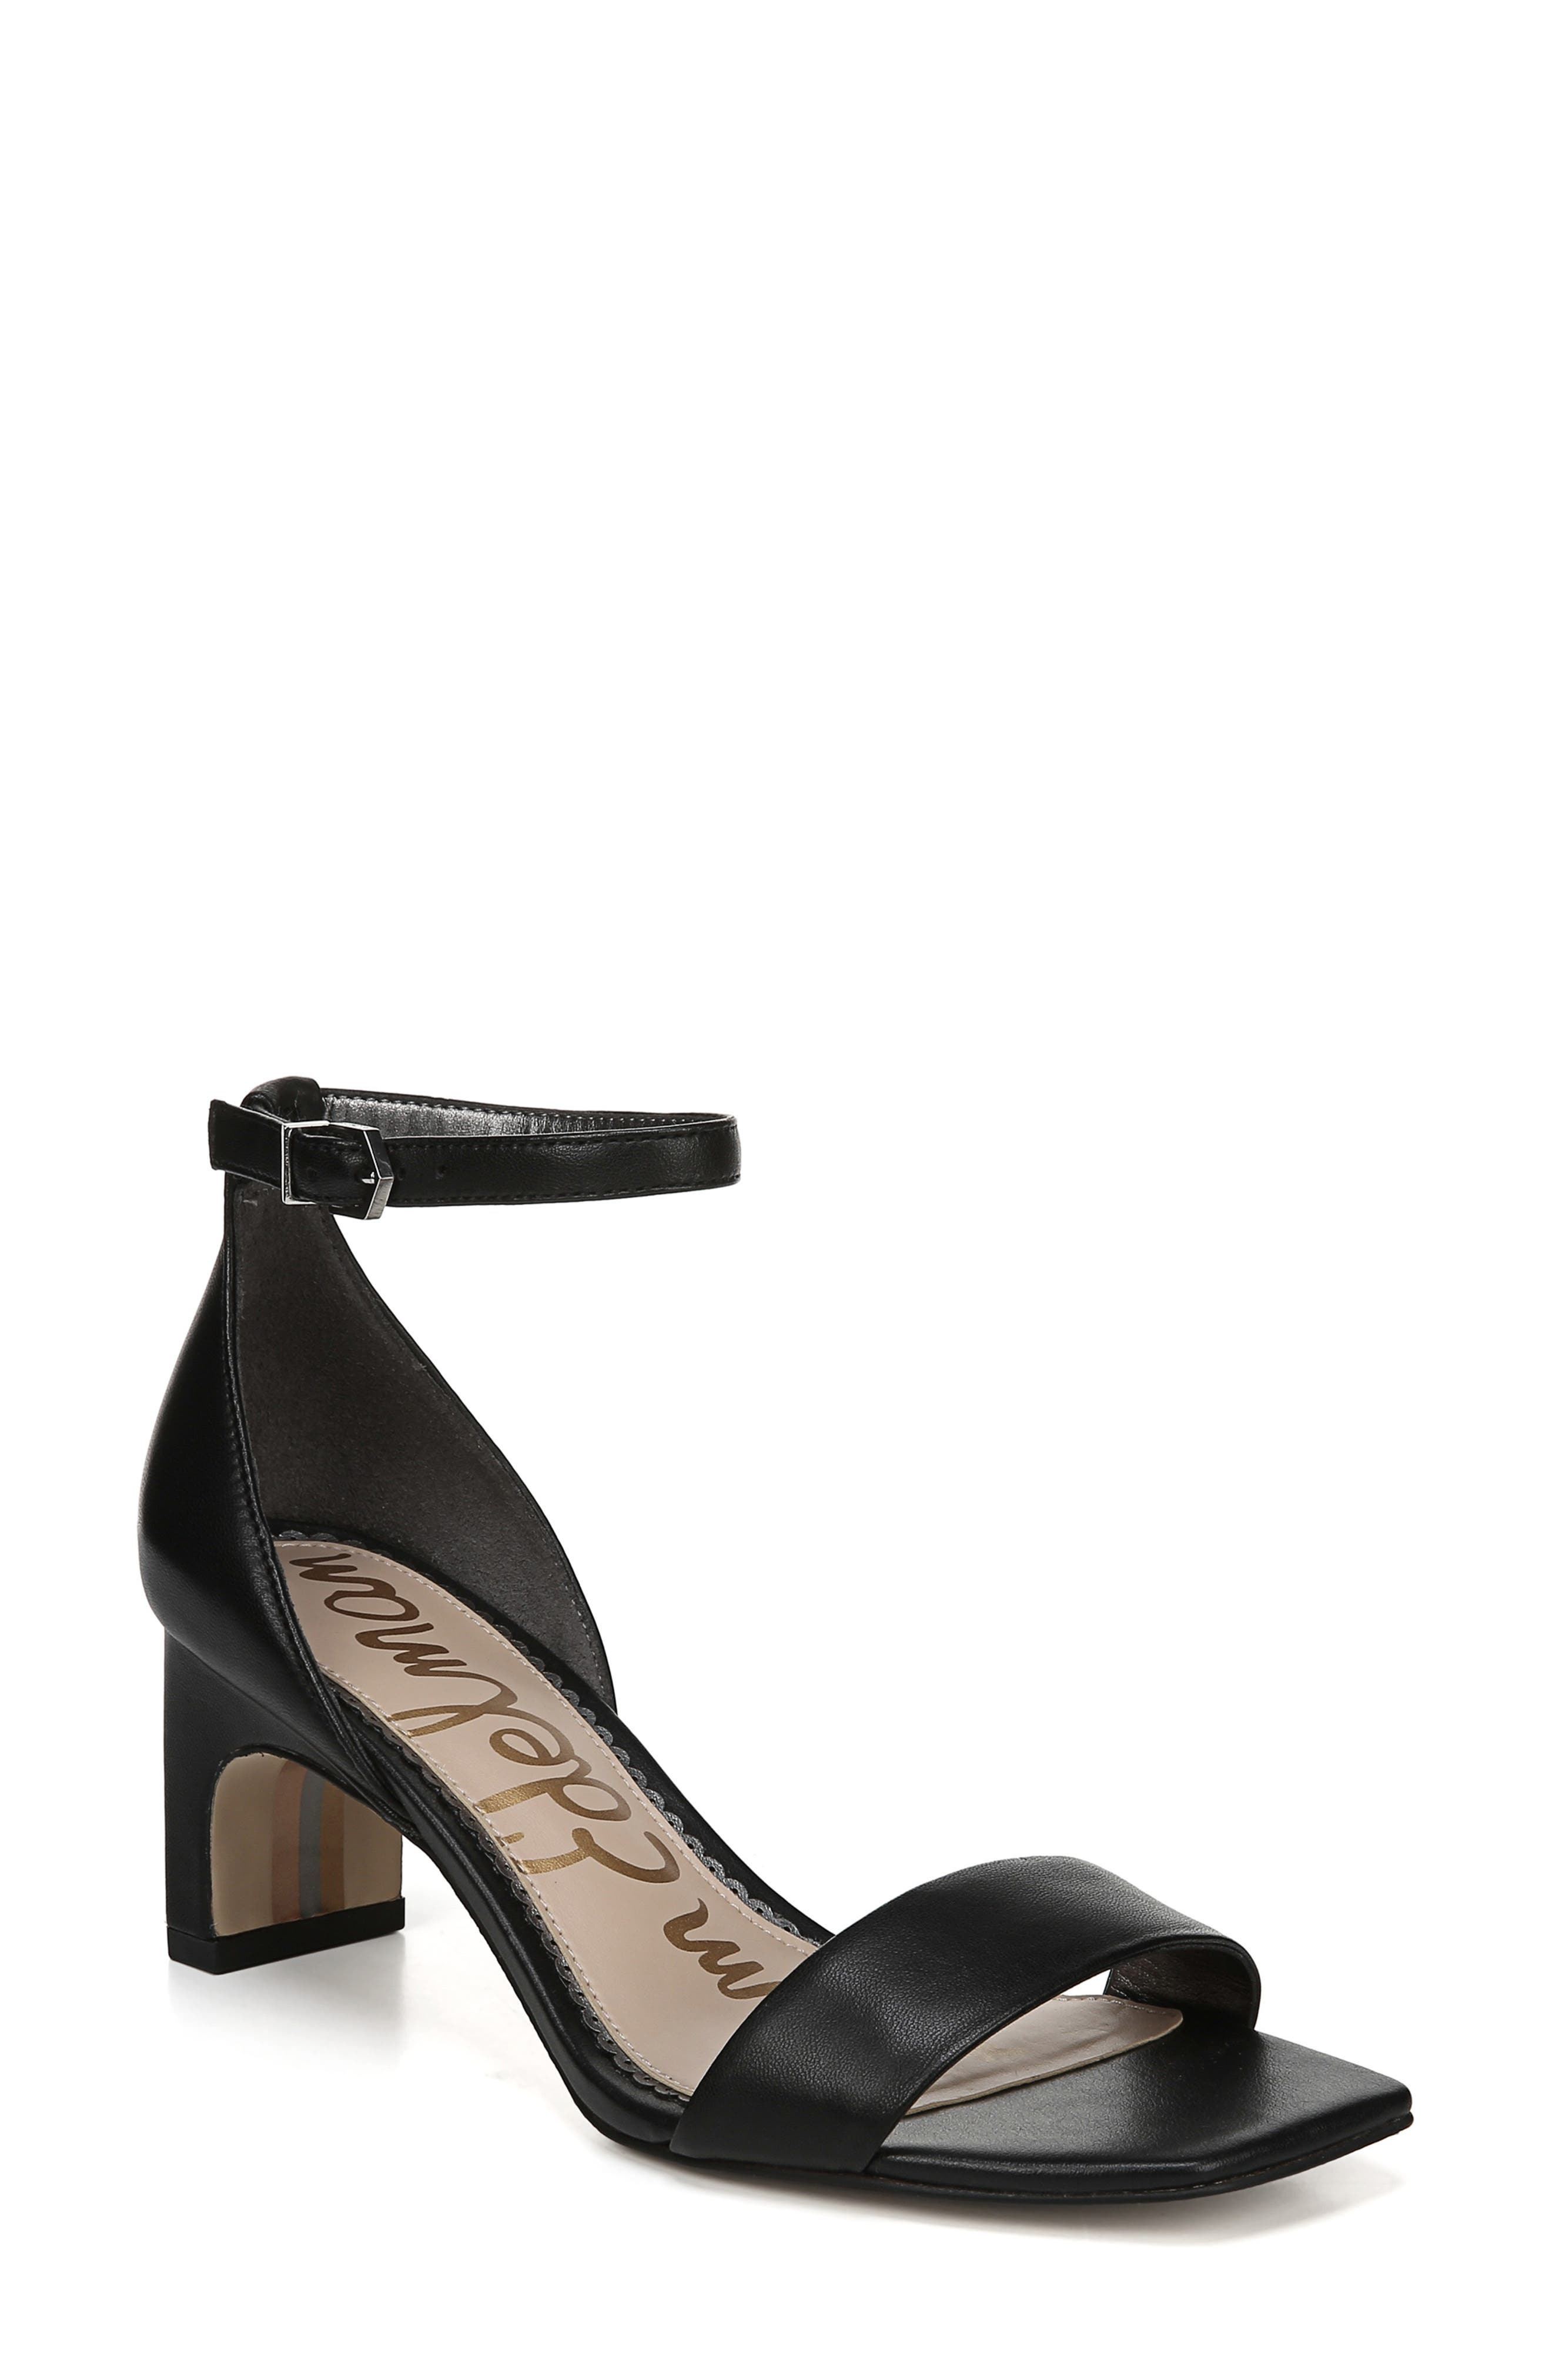 Holmes Ankle Strap Sandal, Main, color, BLACK NAPPA LEATHER